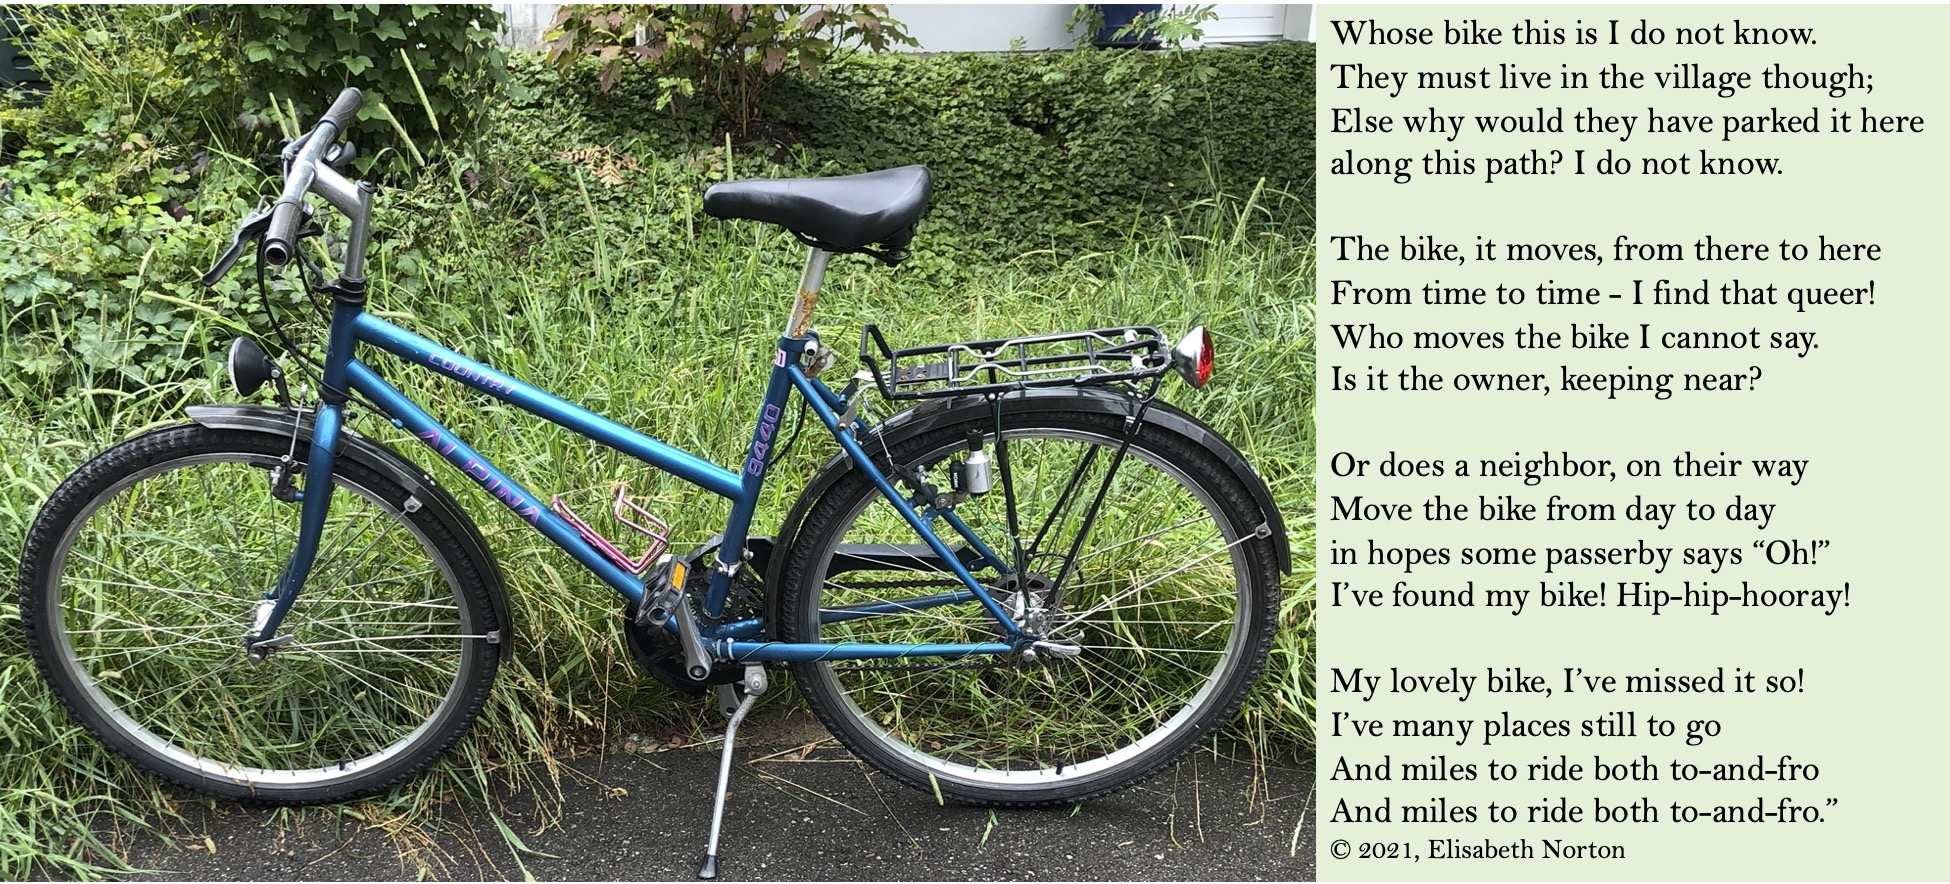 """photo of a blue bicycle parked on a path by grass. A poem copyright 2021 by Elisabeth Norton: Whose bike this is I do not know. They must live in the village though; Else why would they have parked it here along this path? I do not know.  The bike, it moves, from there to here From time to time - I find that queer! Who moves the bike I cannot say. Is it the owner, keeping near?  Or does a neighbor, on their way Move the bike from day to day in hopes some passerby says """"Oh!"""" I've found my bike! Hip-hip-hooray!  My lovely bike, I've missed it so! I've many places still to go And miles to ride both to-and-fro  And miles to ride both to-and-fro."""""""